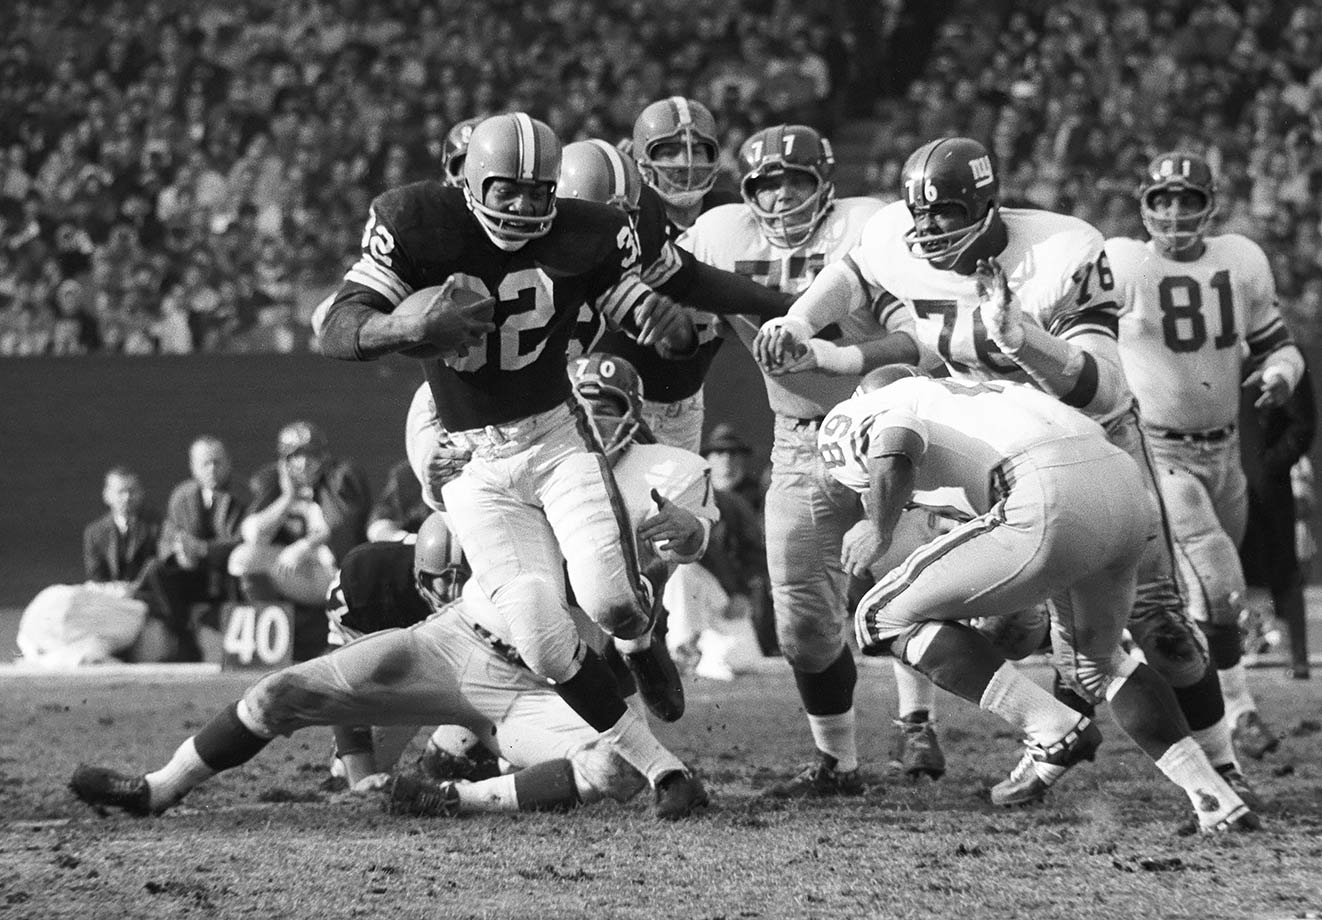 Jim Brown extends a stiff arm as he runs away from the New York Giants defense at Cleveland Municipal Stadium in 1961. Brown did a lot of running away from defenses in 1961 as he topped 100 yards per game for the fourth straight season, racking up 1,408 rushing yards plus another 459 receiving.